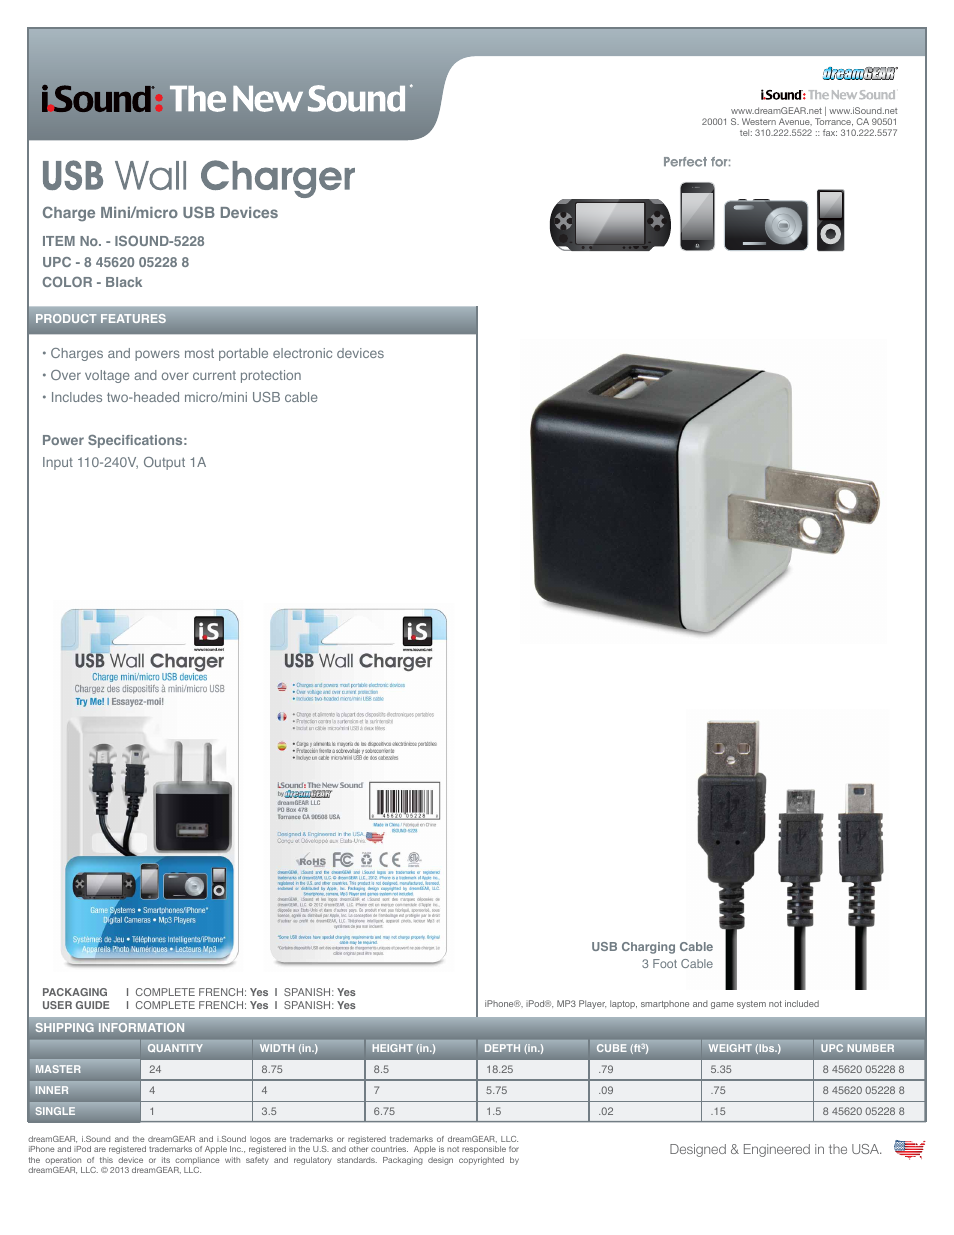 Isound Usb Wall Charger Sell Sheet User Manual 1 Page Mini Diagram